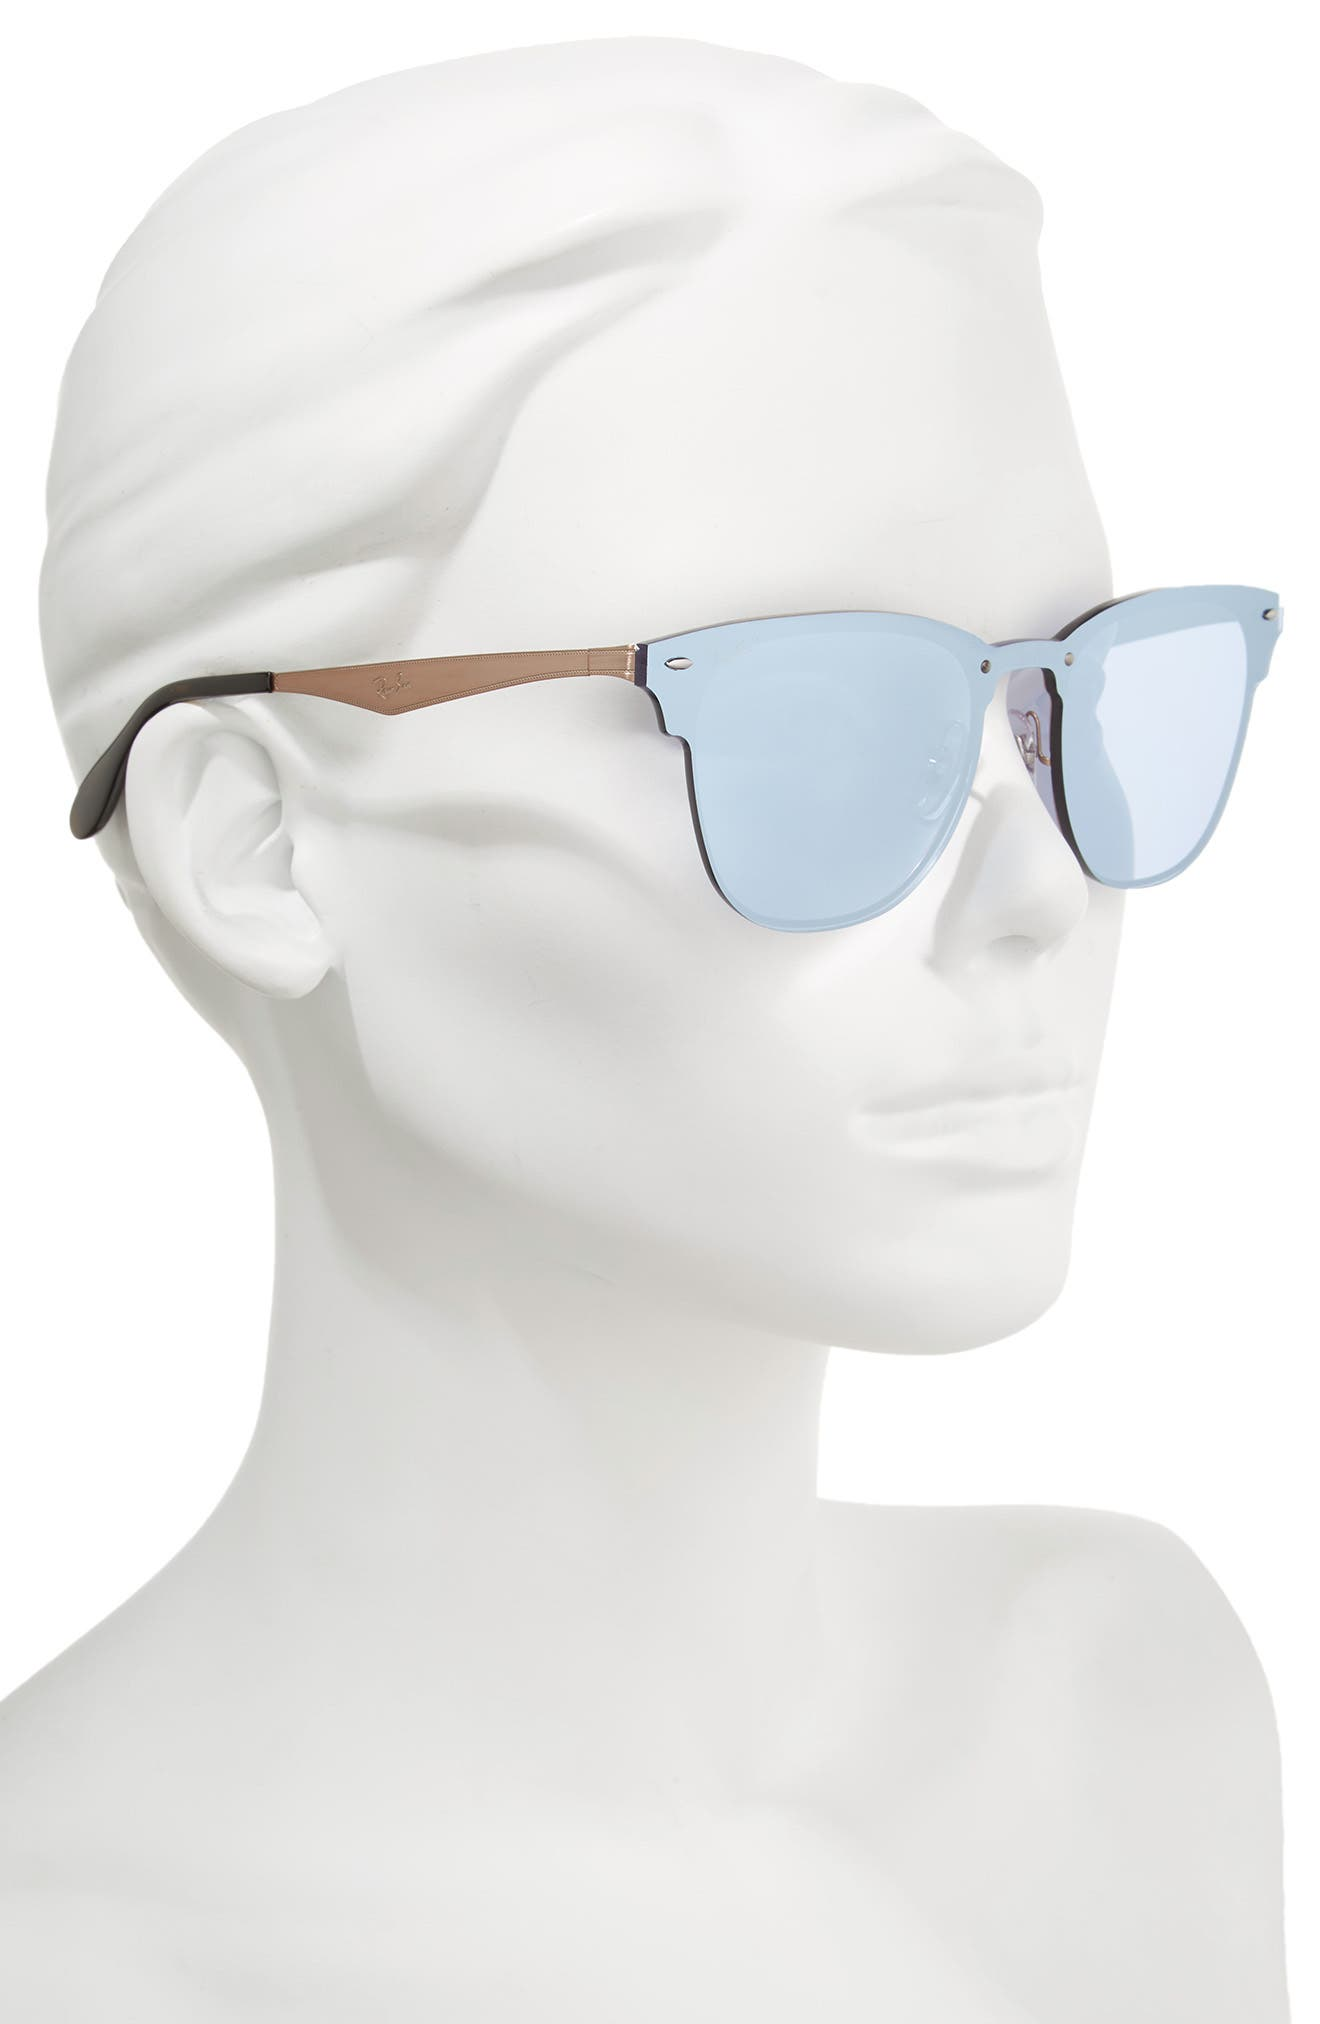 50mm Round Clubmaster Sunglasses,                             Alternate thumbnail 6, color,